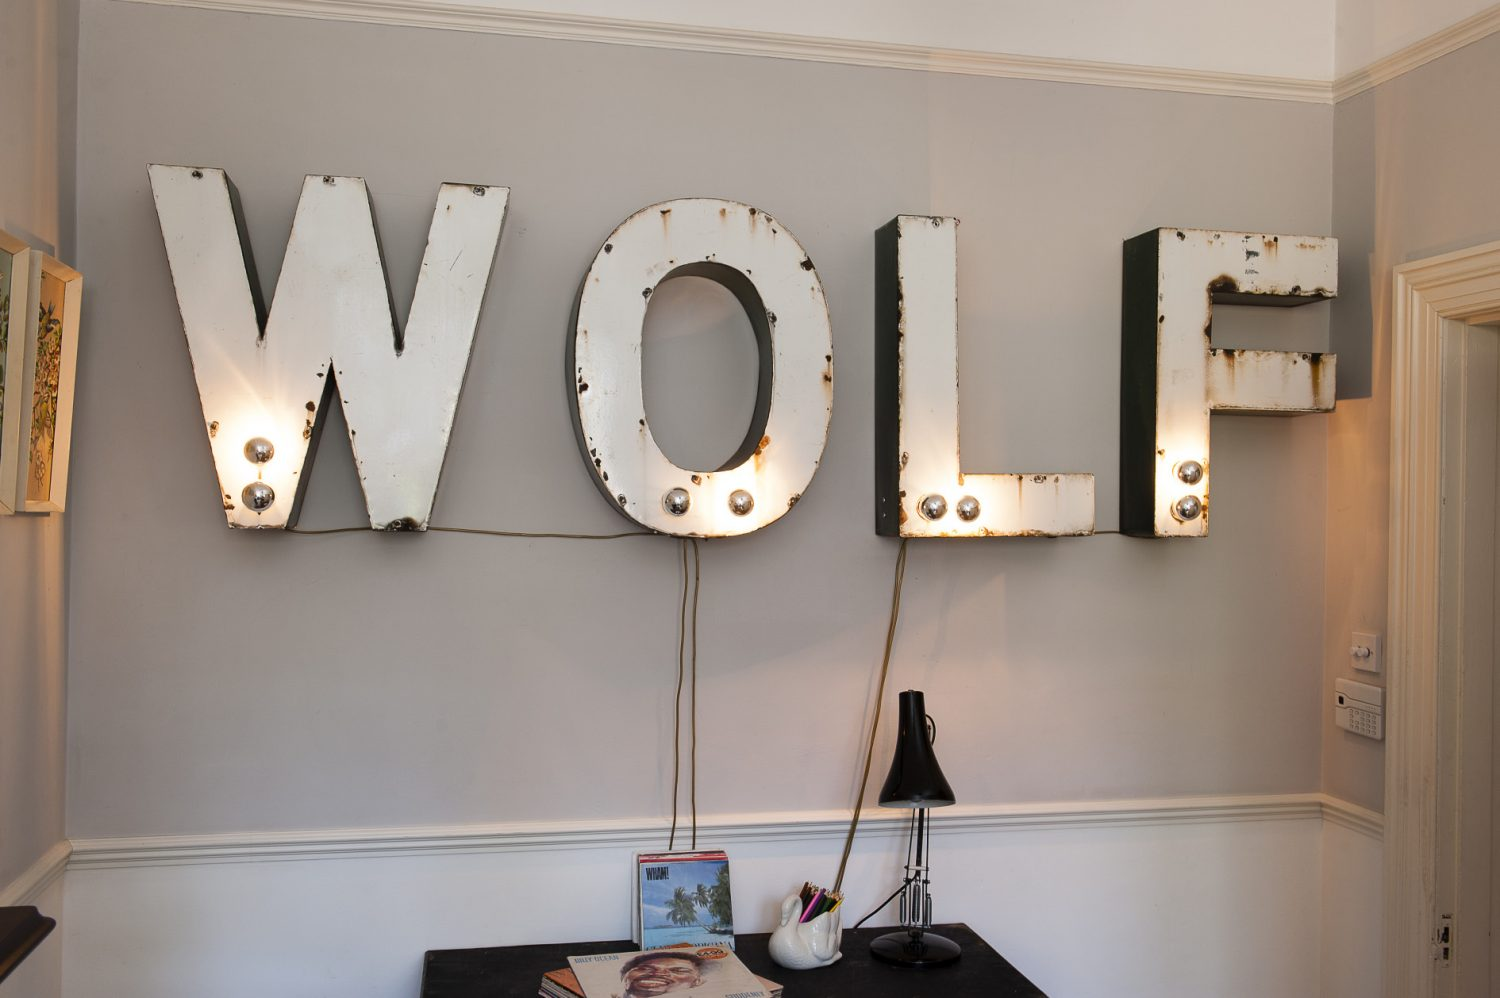 Stuart found the letters which spell out 'wolf' at McCully & Crane